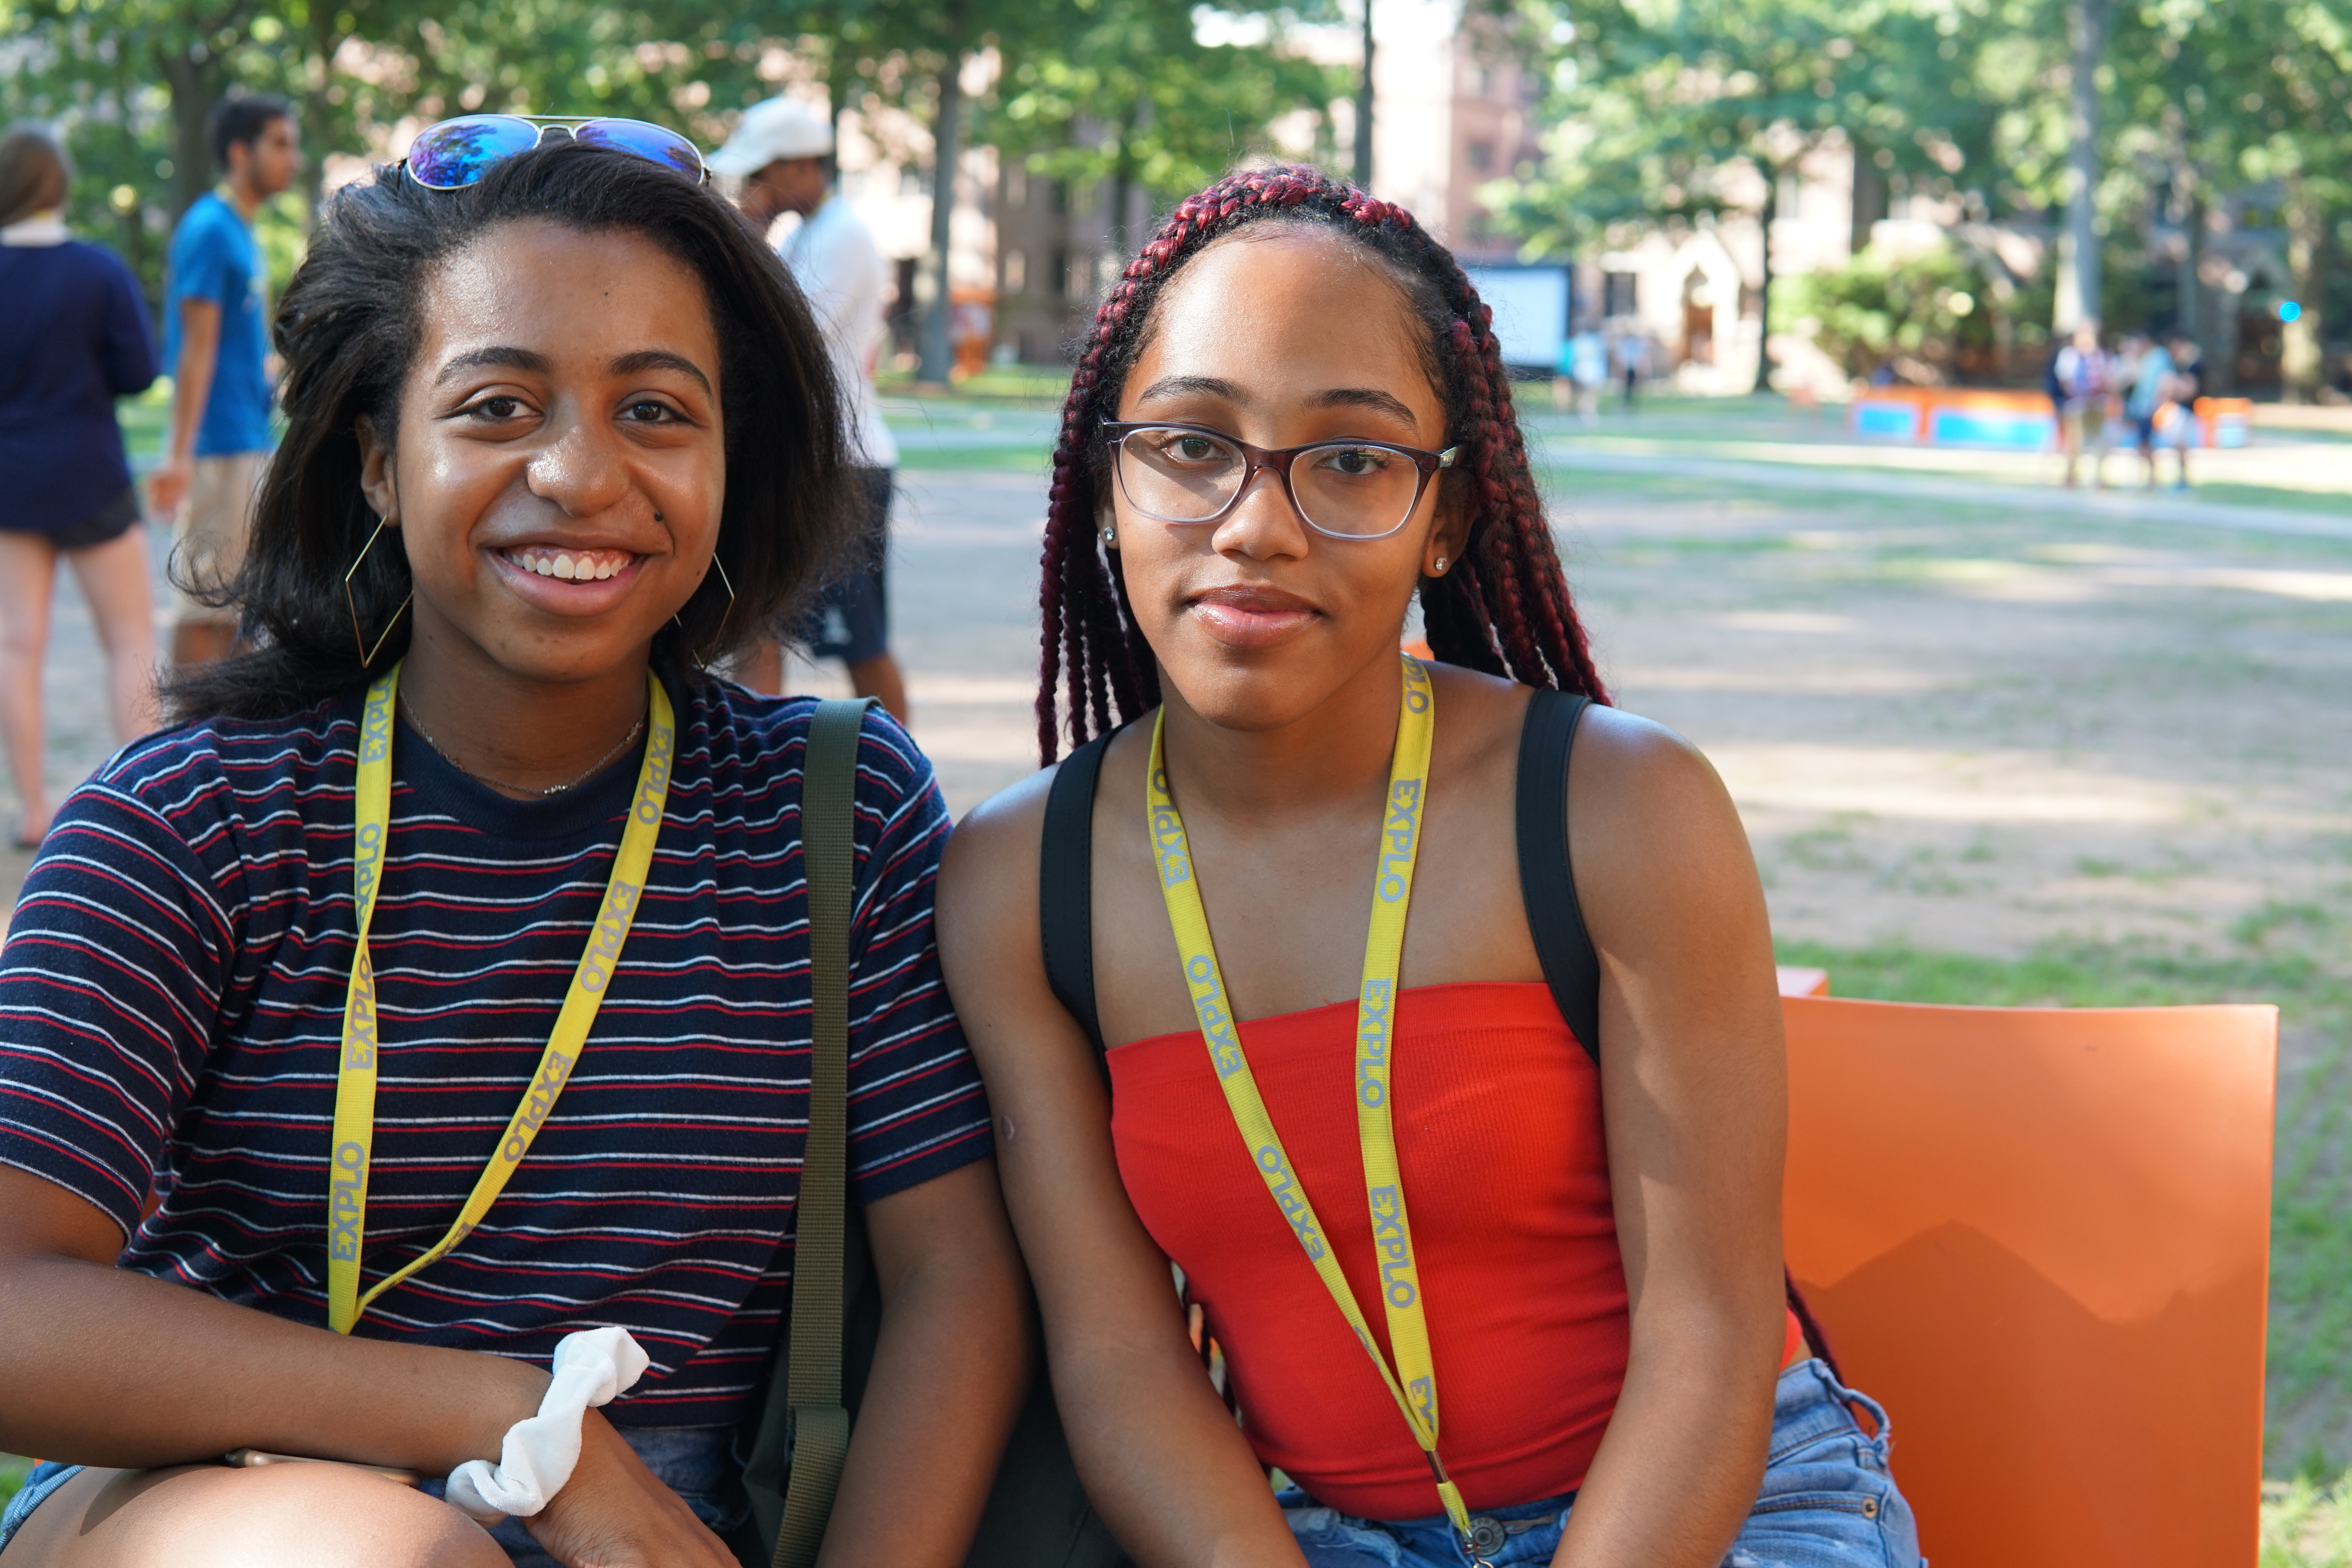 Meet Simone from Maryland and Gabby from Missouri